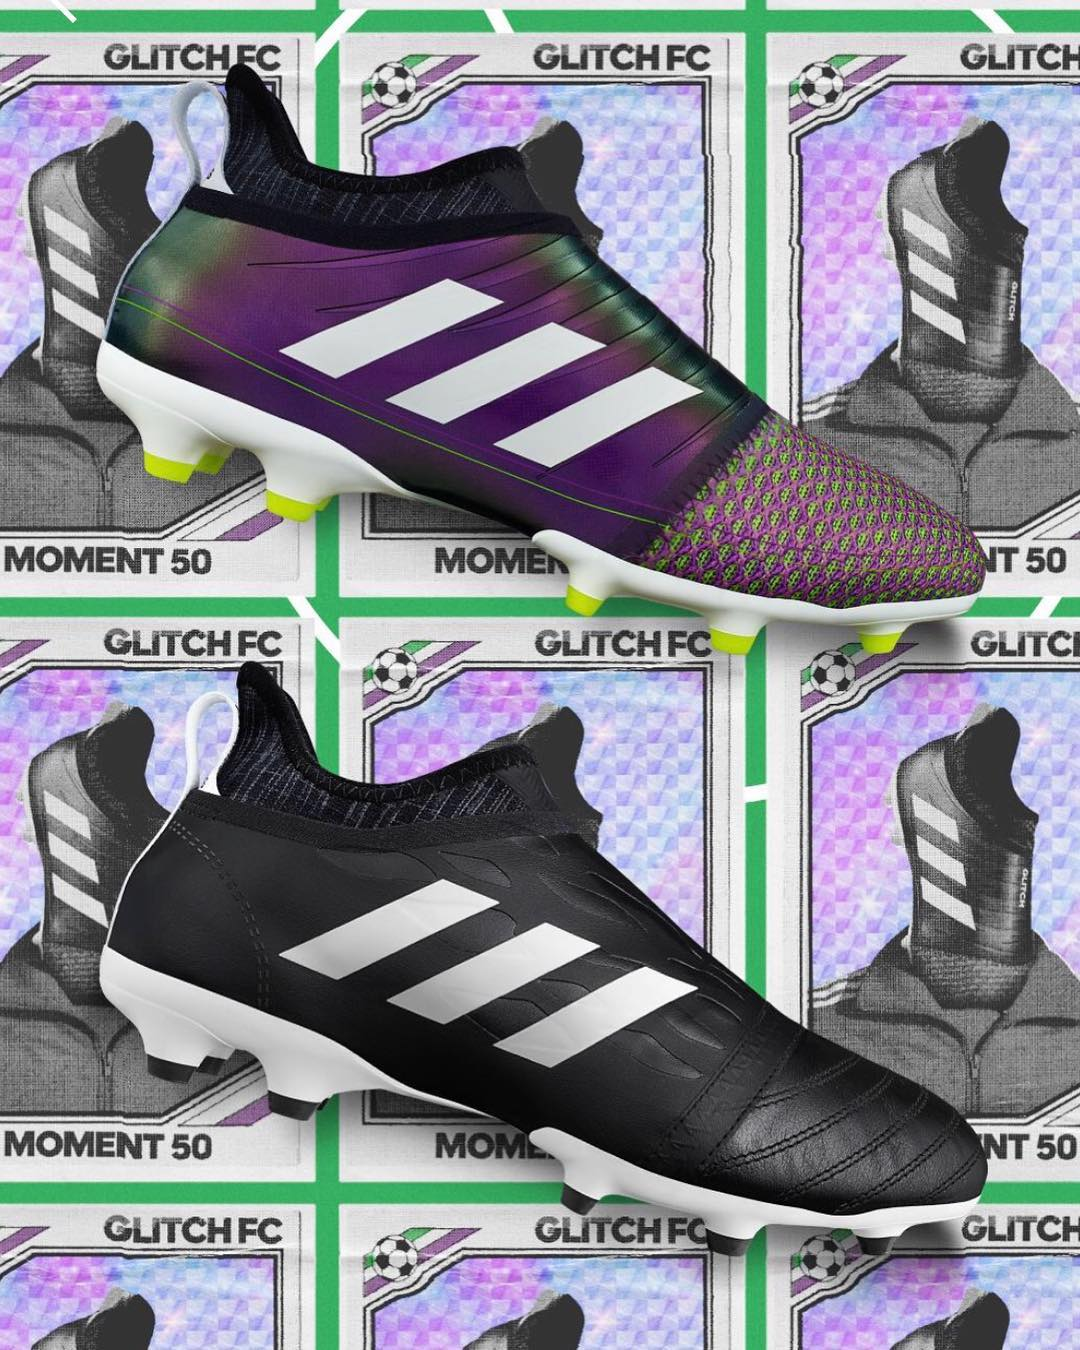 949147c99 The latest Adidas Glitch football boot pack celebrates the classic Adidas  Copa Mundial and the outstanding Adidas F50 Adizero Messi boot of the 2010  World ...